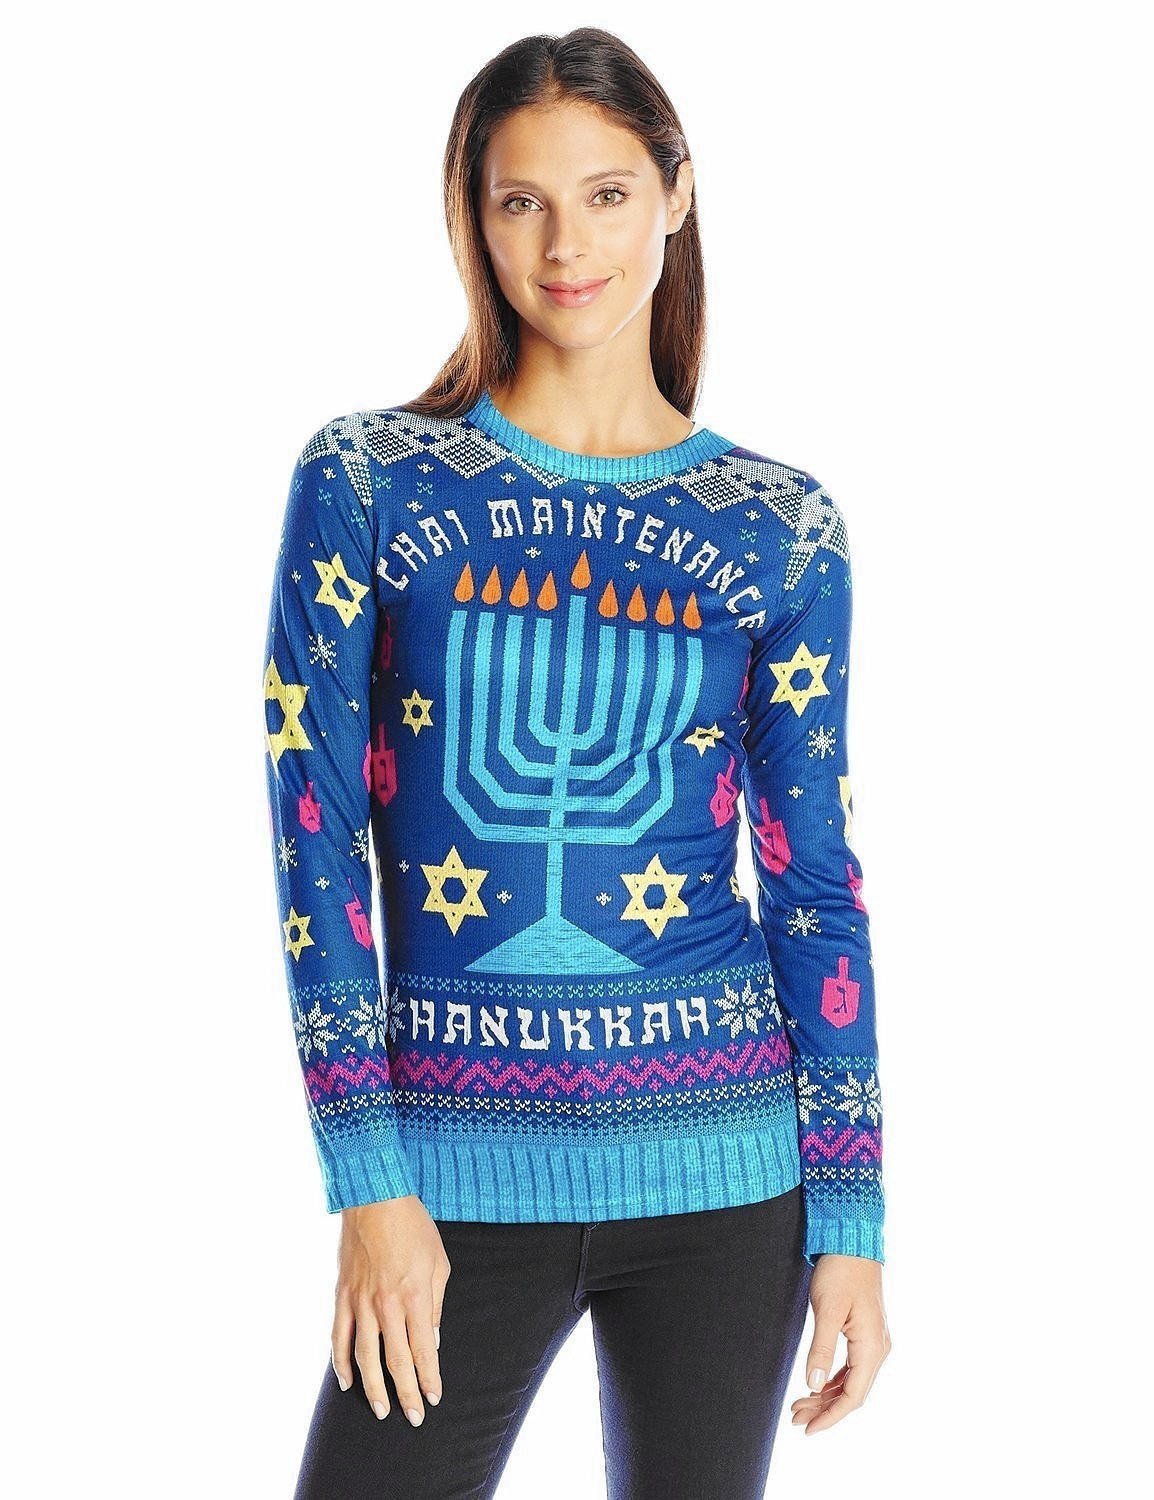 Nordstrom Christmas Sweater - Sweater Tunic